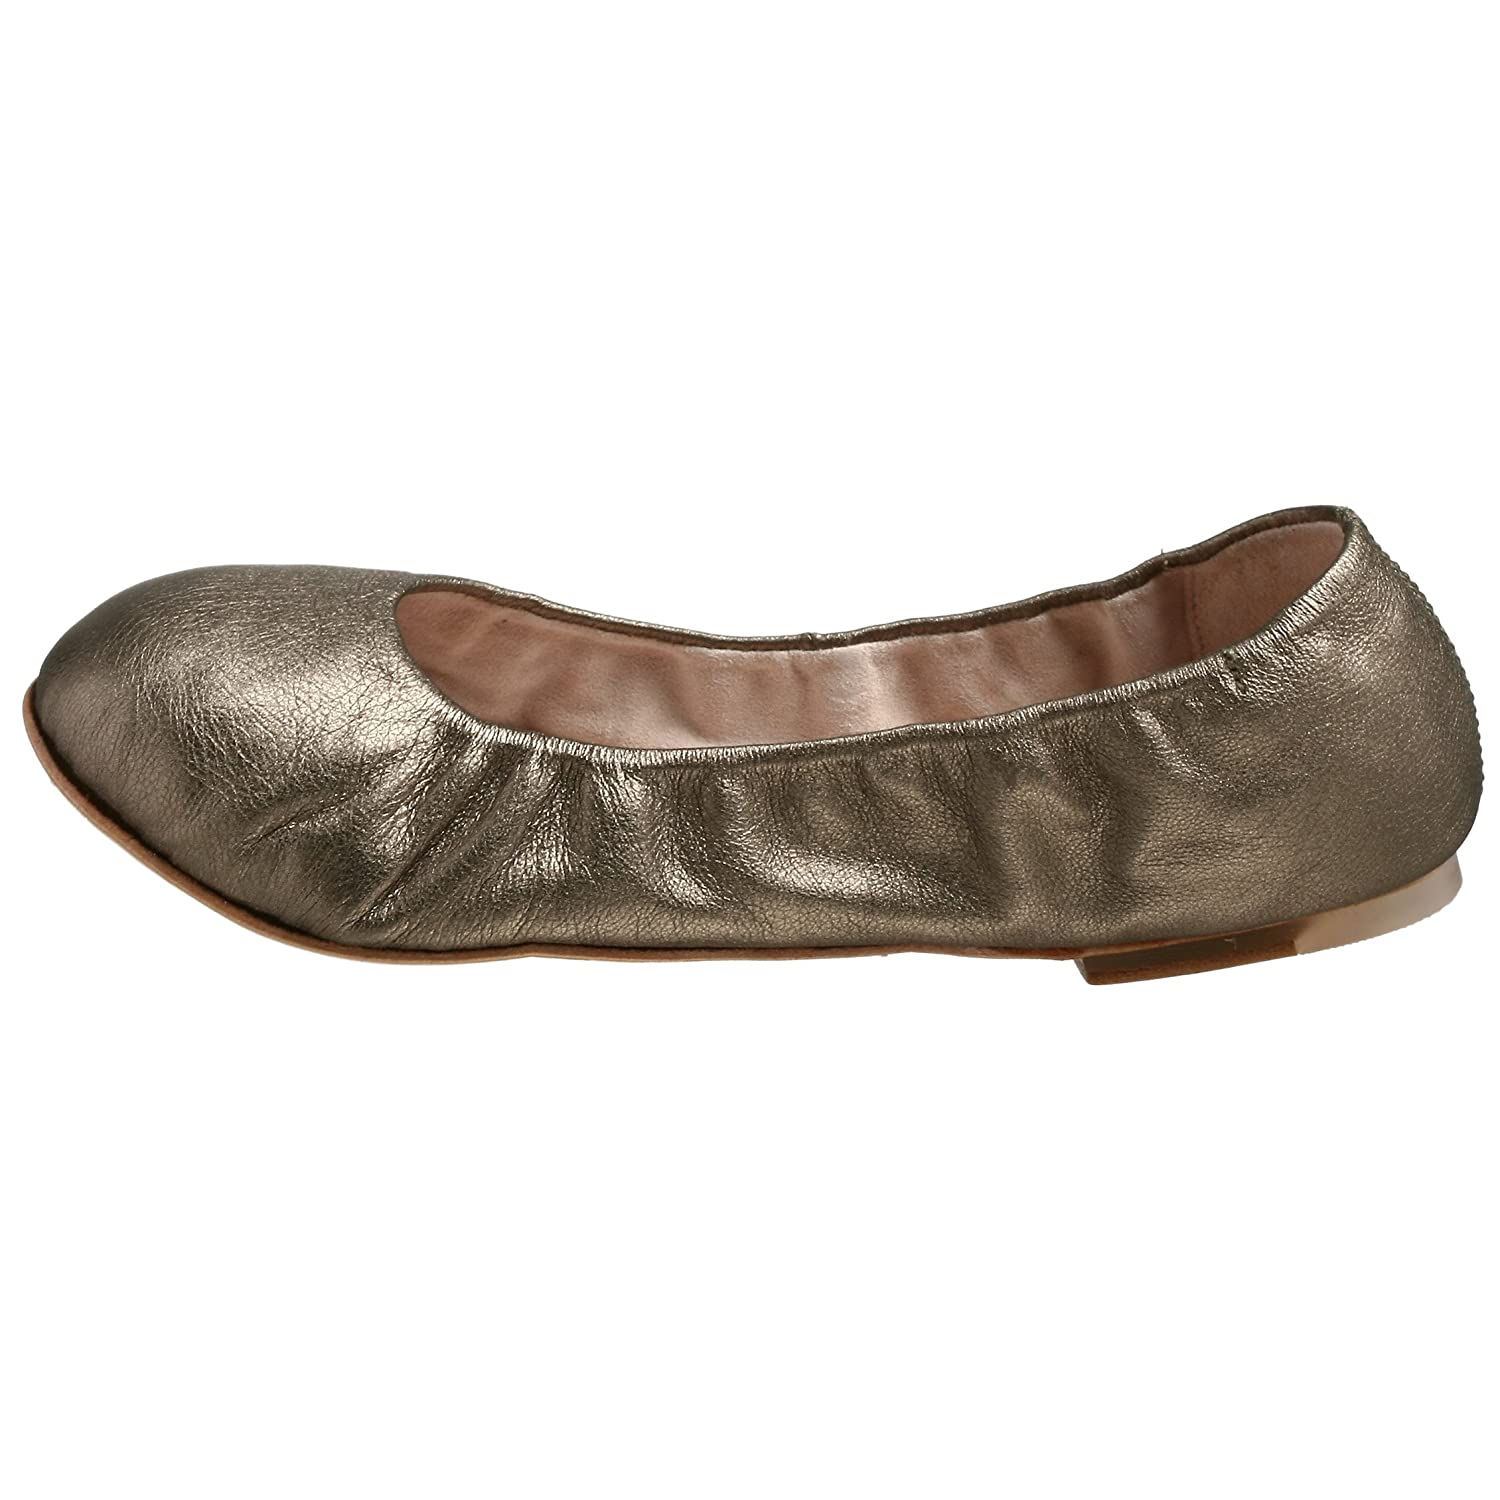 Bloch London Zeus Ballerina Ballet Flat - Free Overnight Shipping & Return Shipping: Endless.com from endless.com